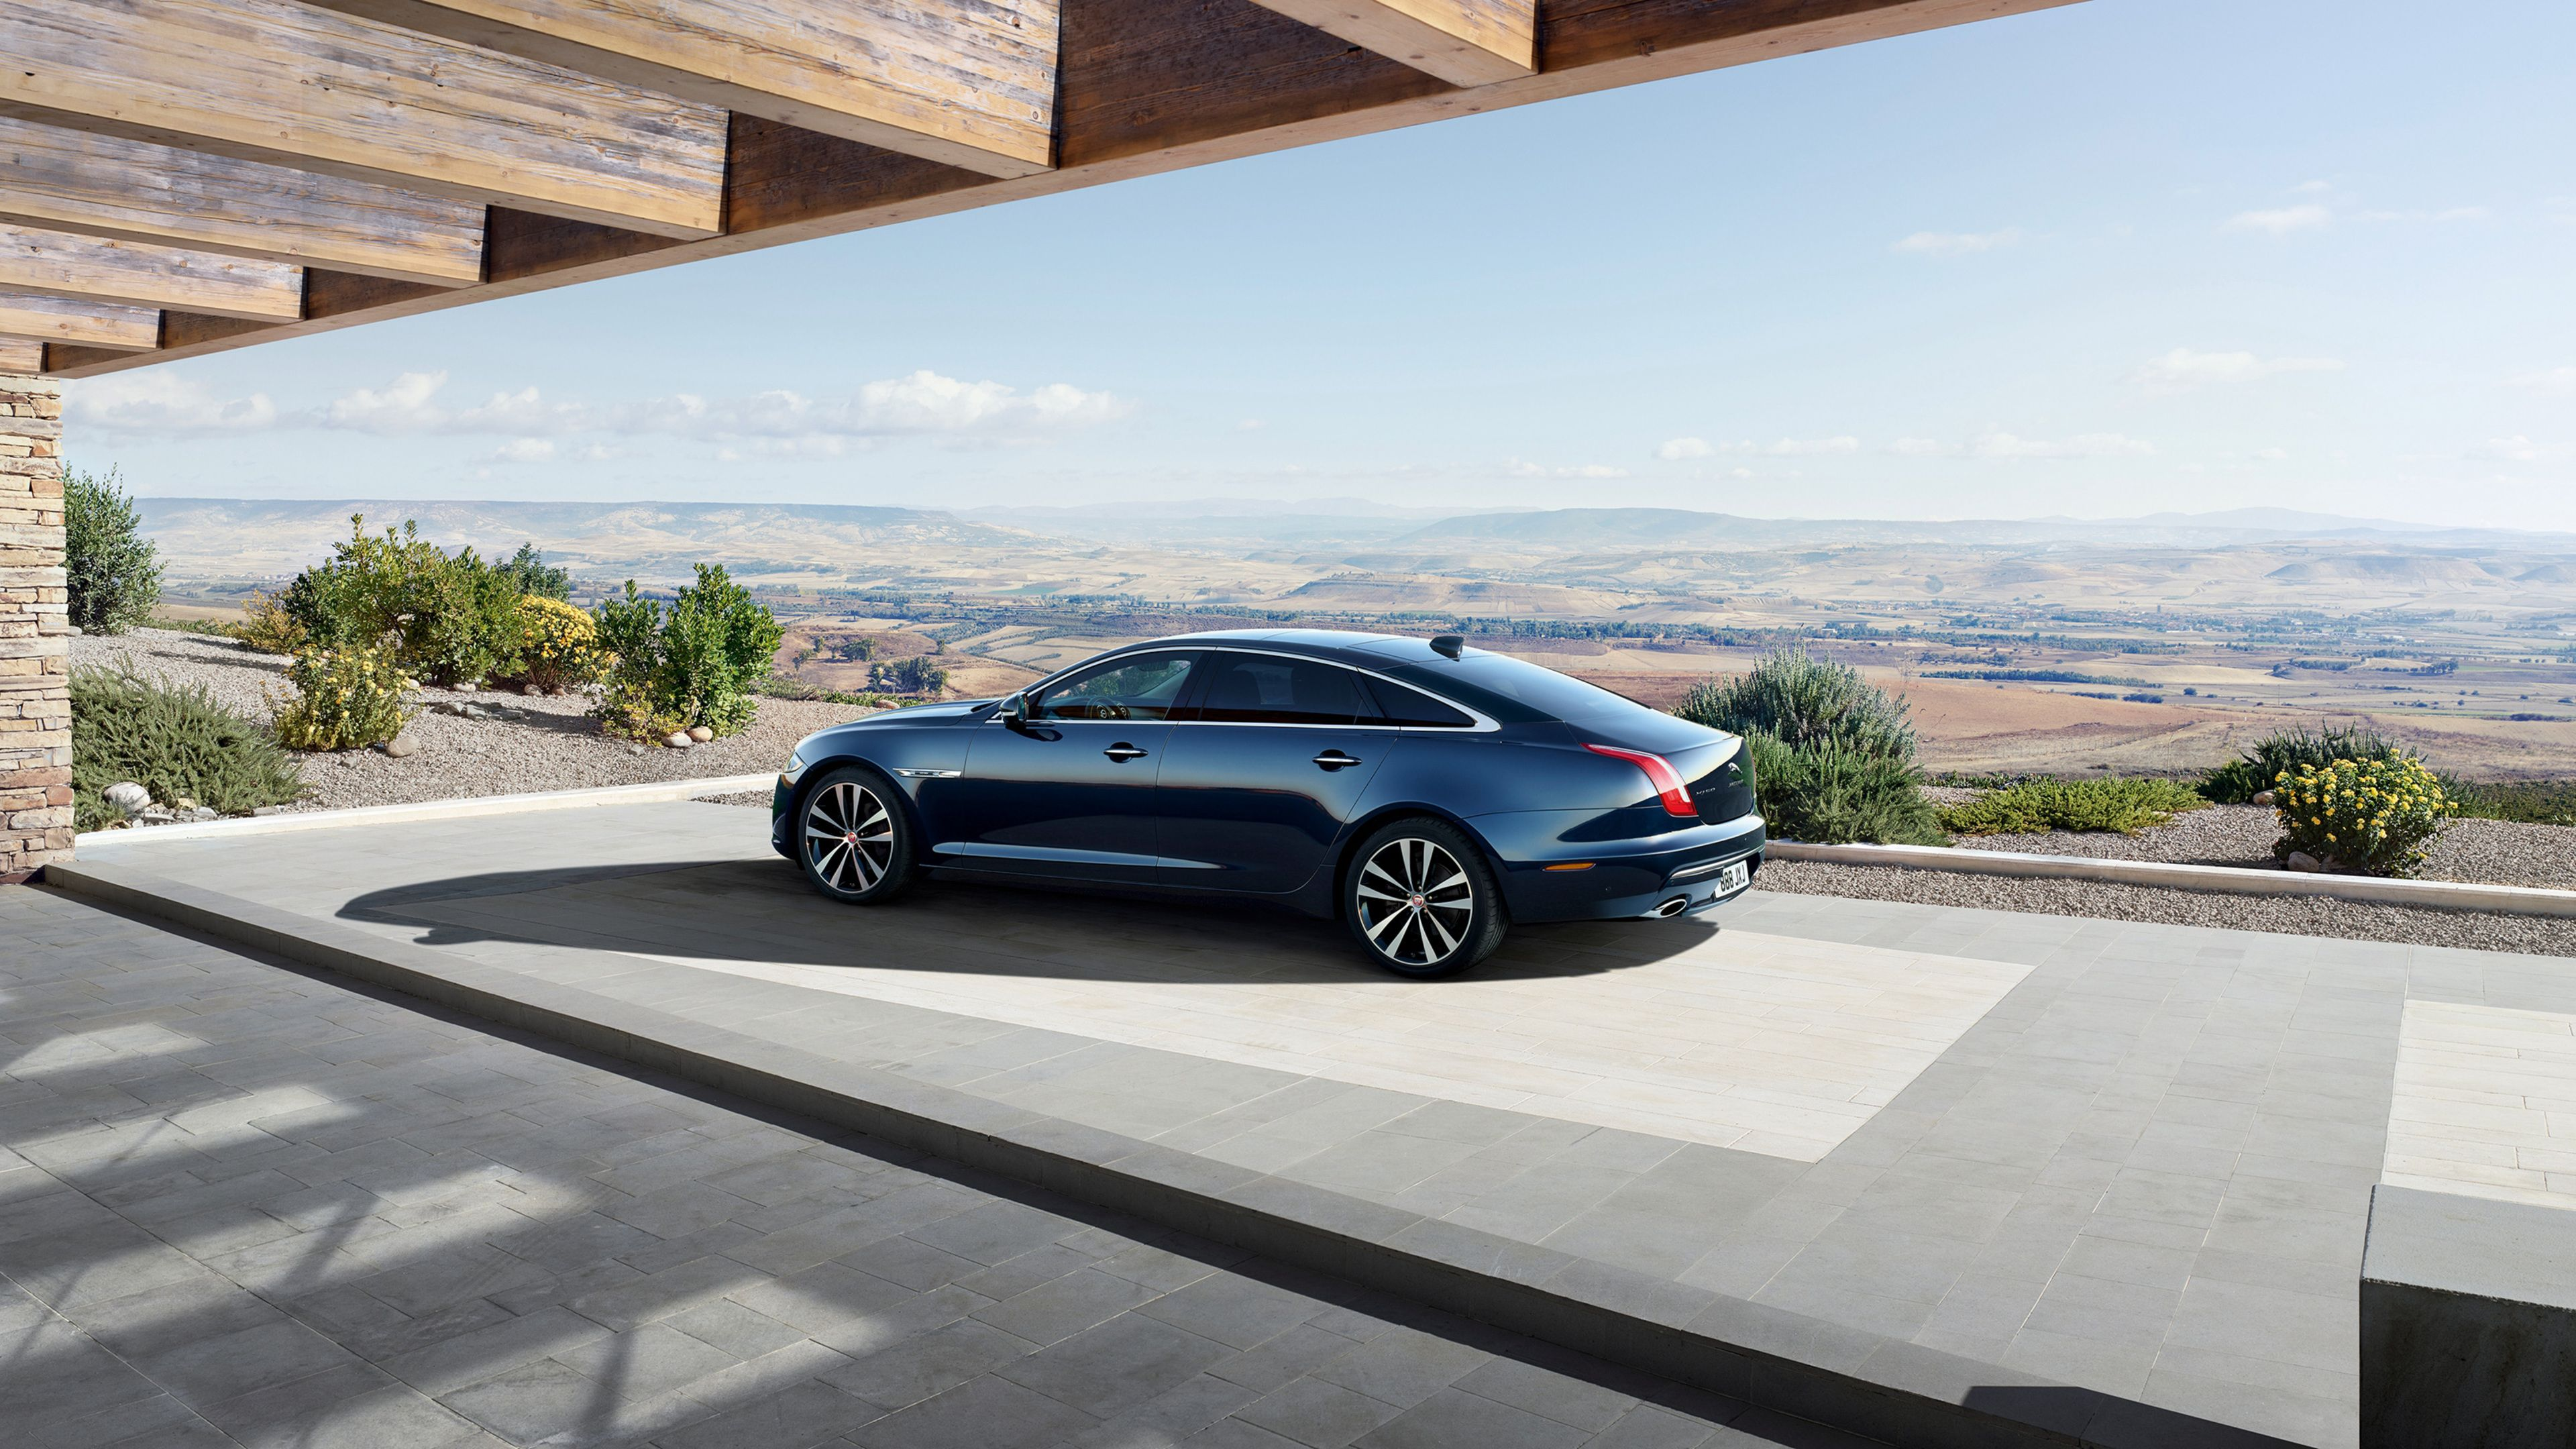 Wallpaper 4k 2018 Jaguar Xj50 Lwb Rear 2018 Cars Wallpapers 4k